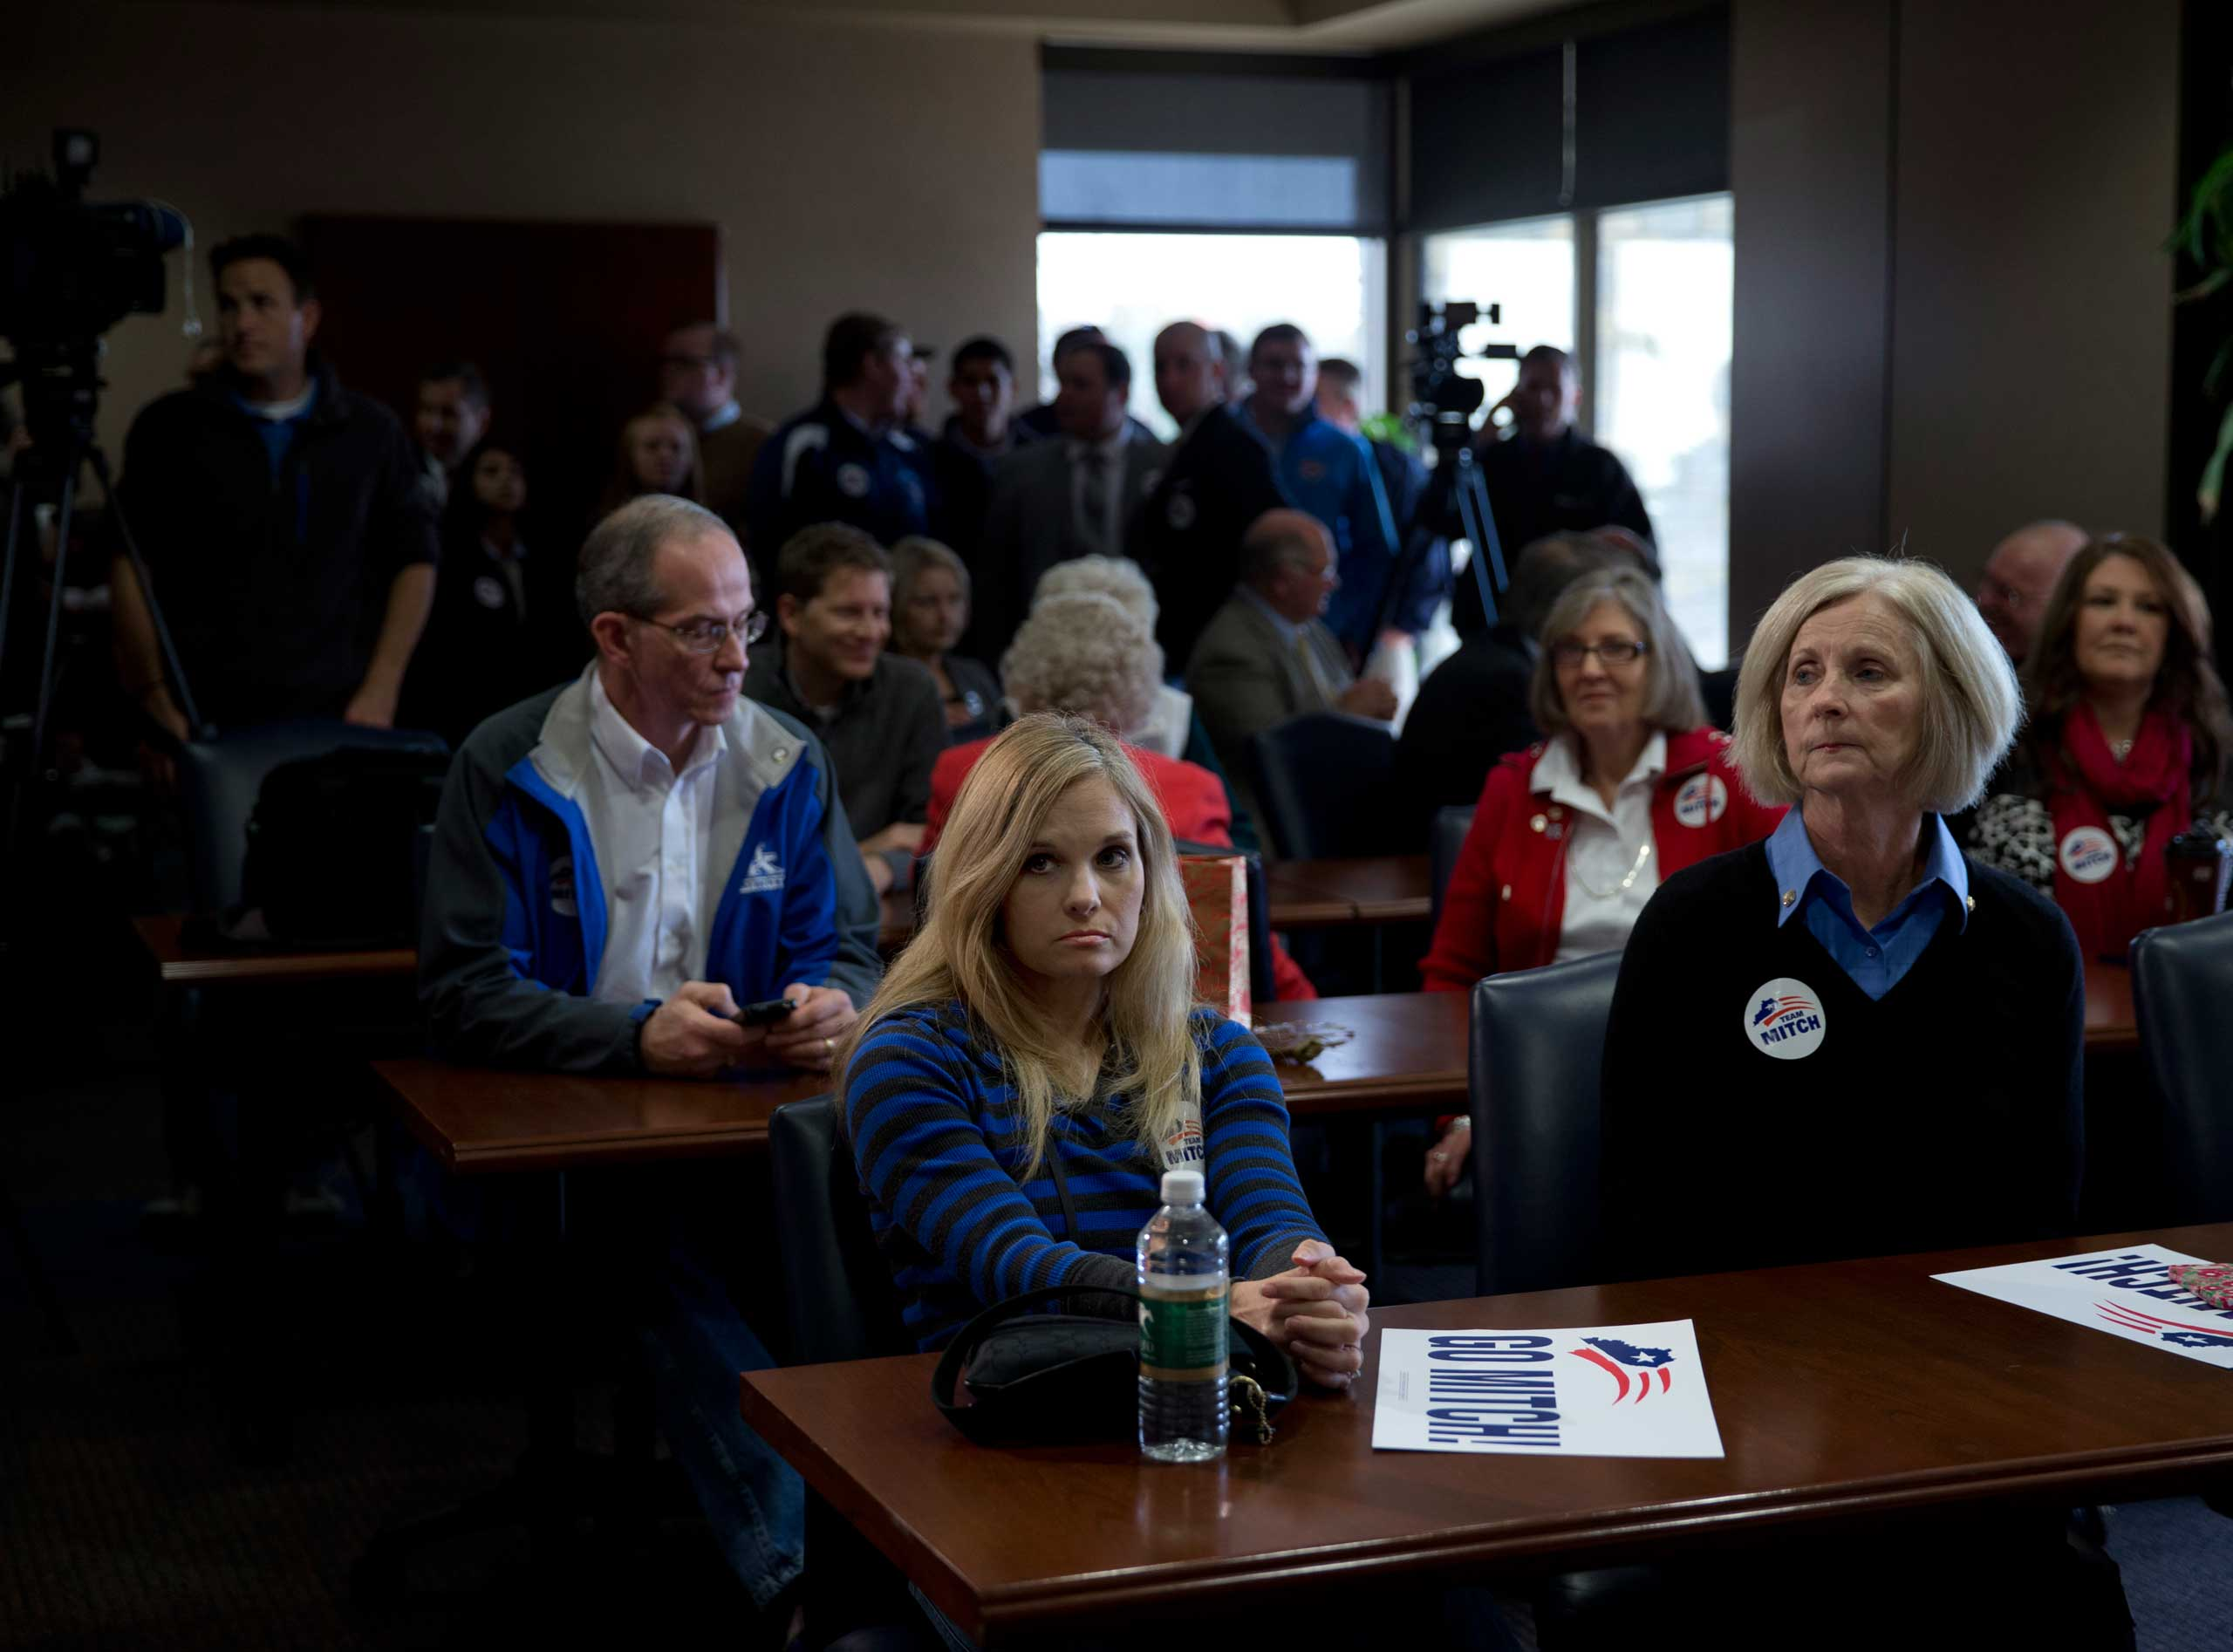 Supporters of Sen. Mitch McConnell are seen at a campaign rally at Bluegrass Airport in Lexington, Ky. on Nov. 3, 2014.